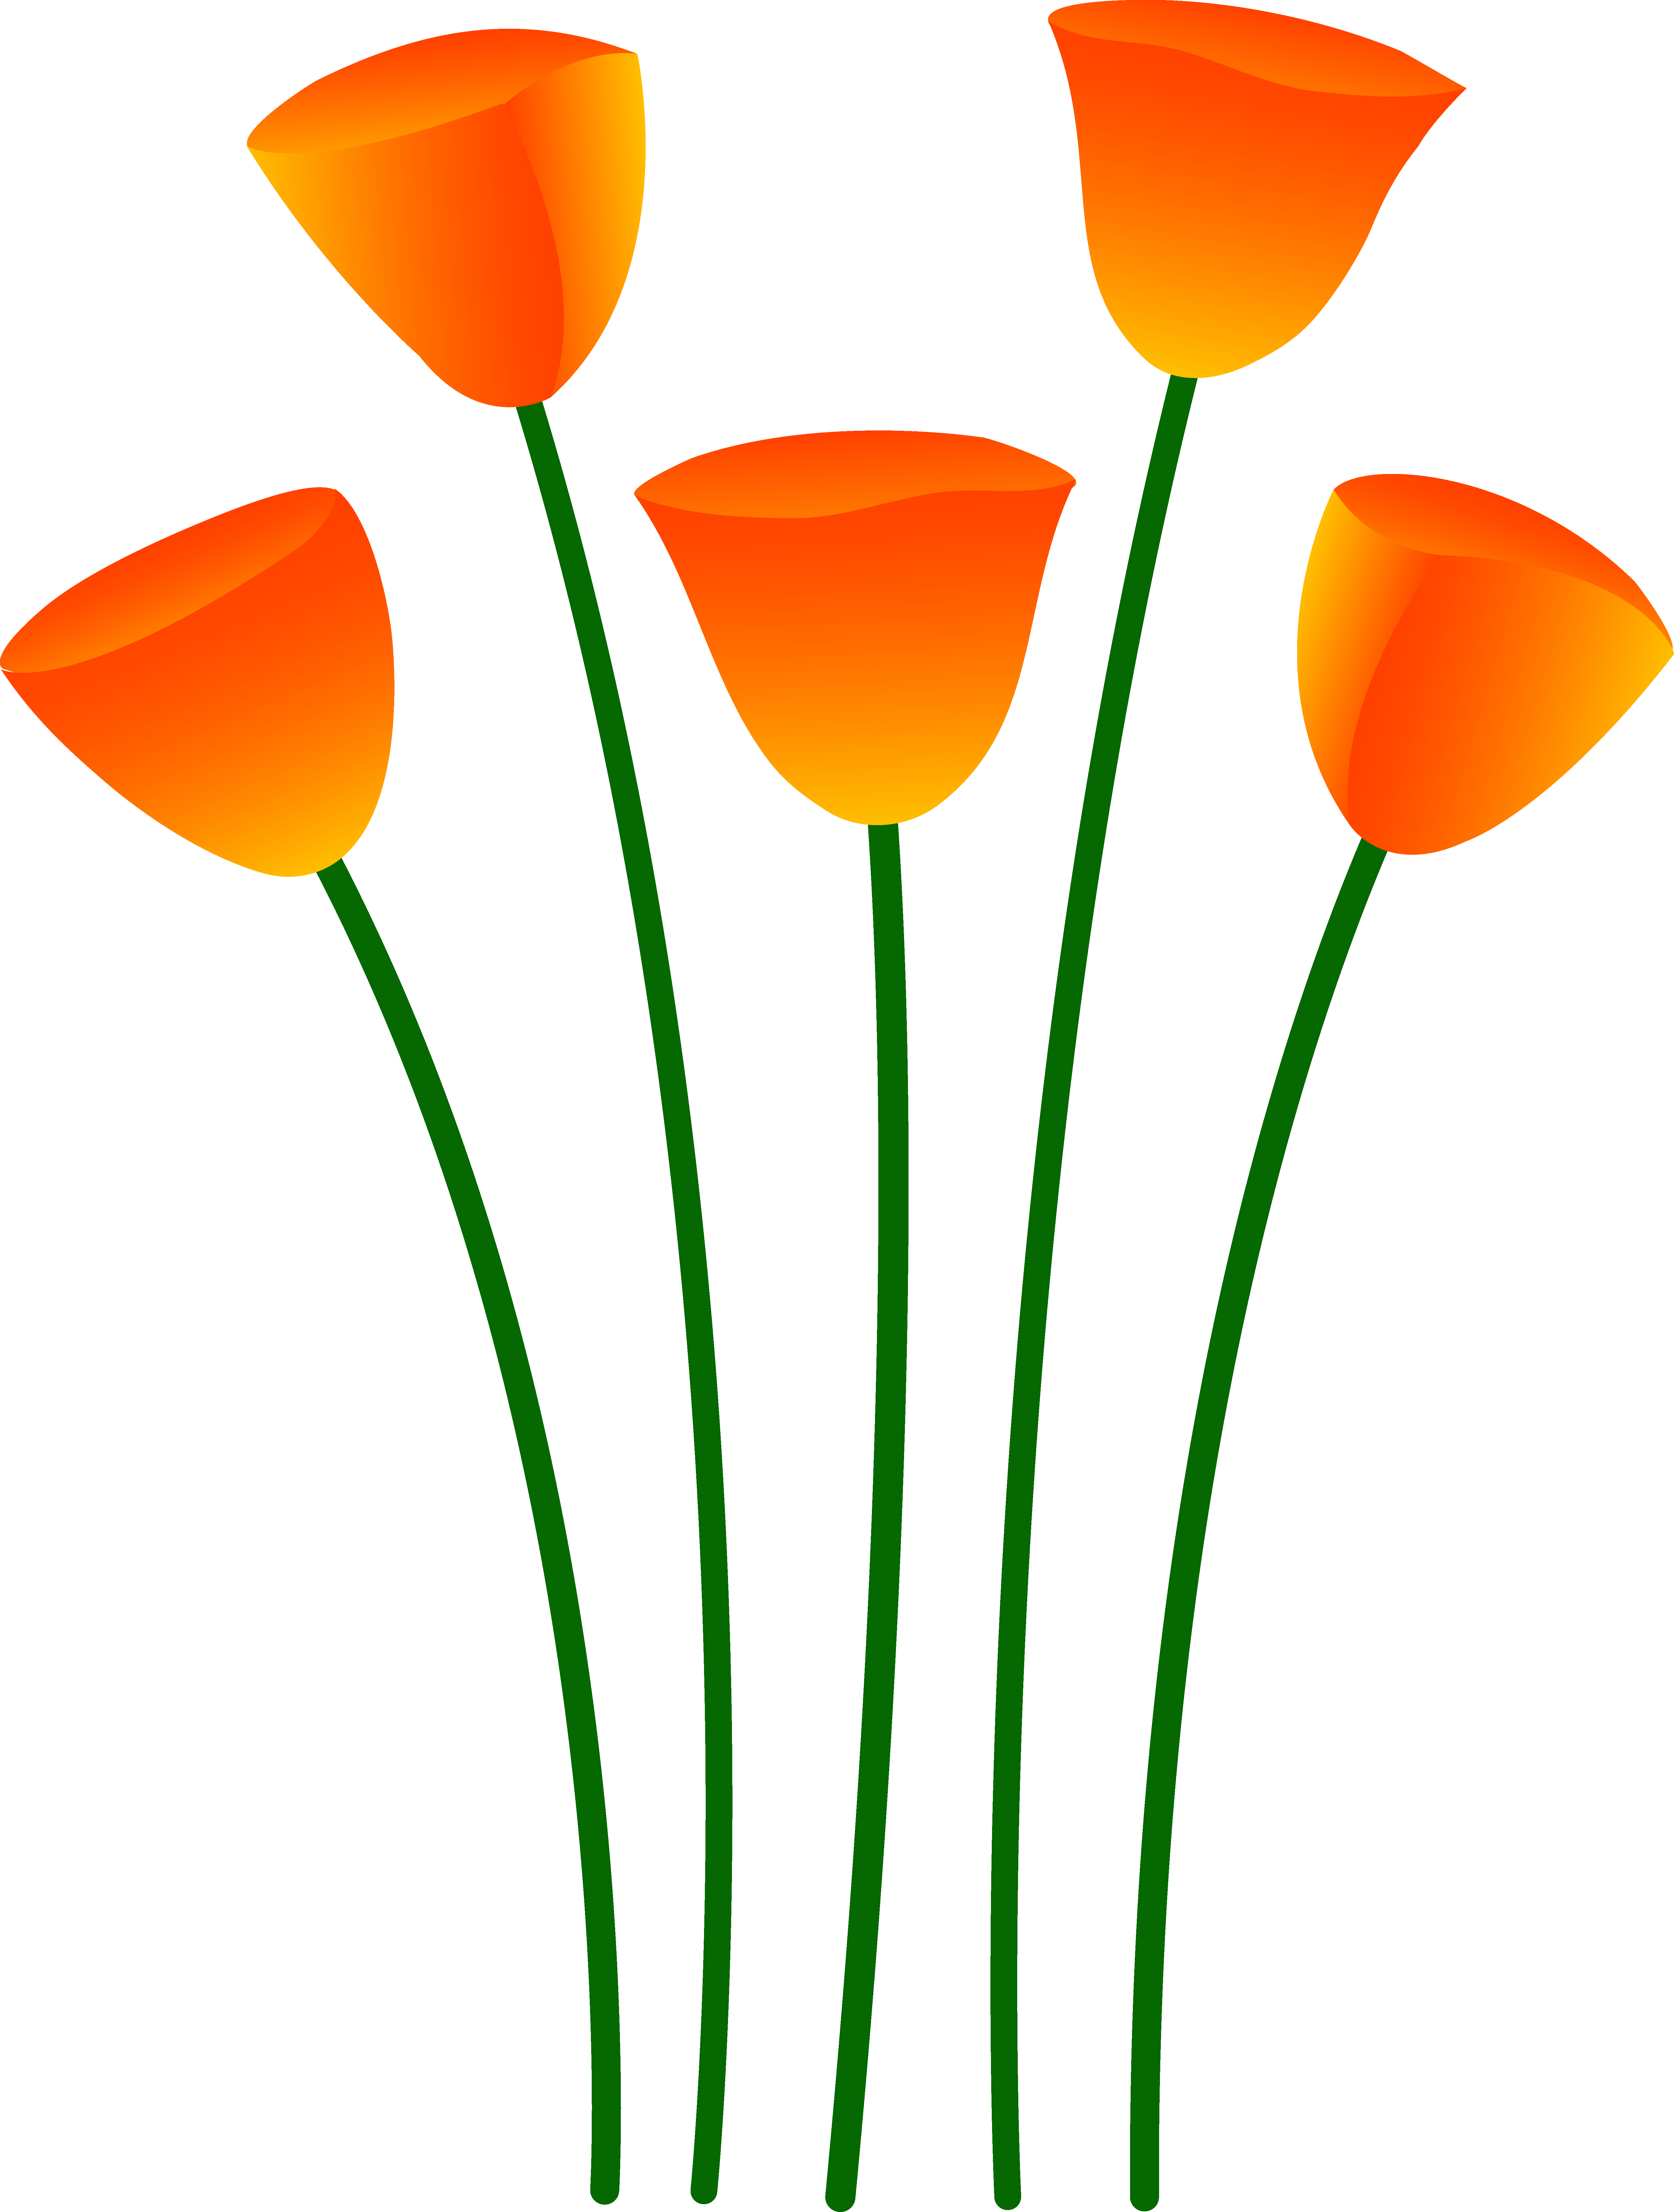 California poppy flower clipart clip art transparent stock Free Poppy Cliparts, Download Free Clip Art, Free Clip Art on ... clip art transparent stock